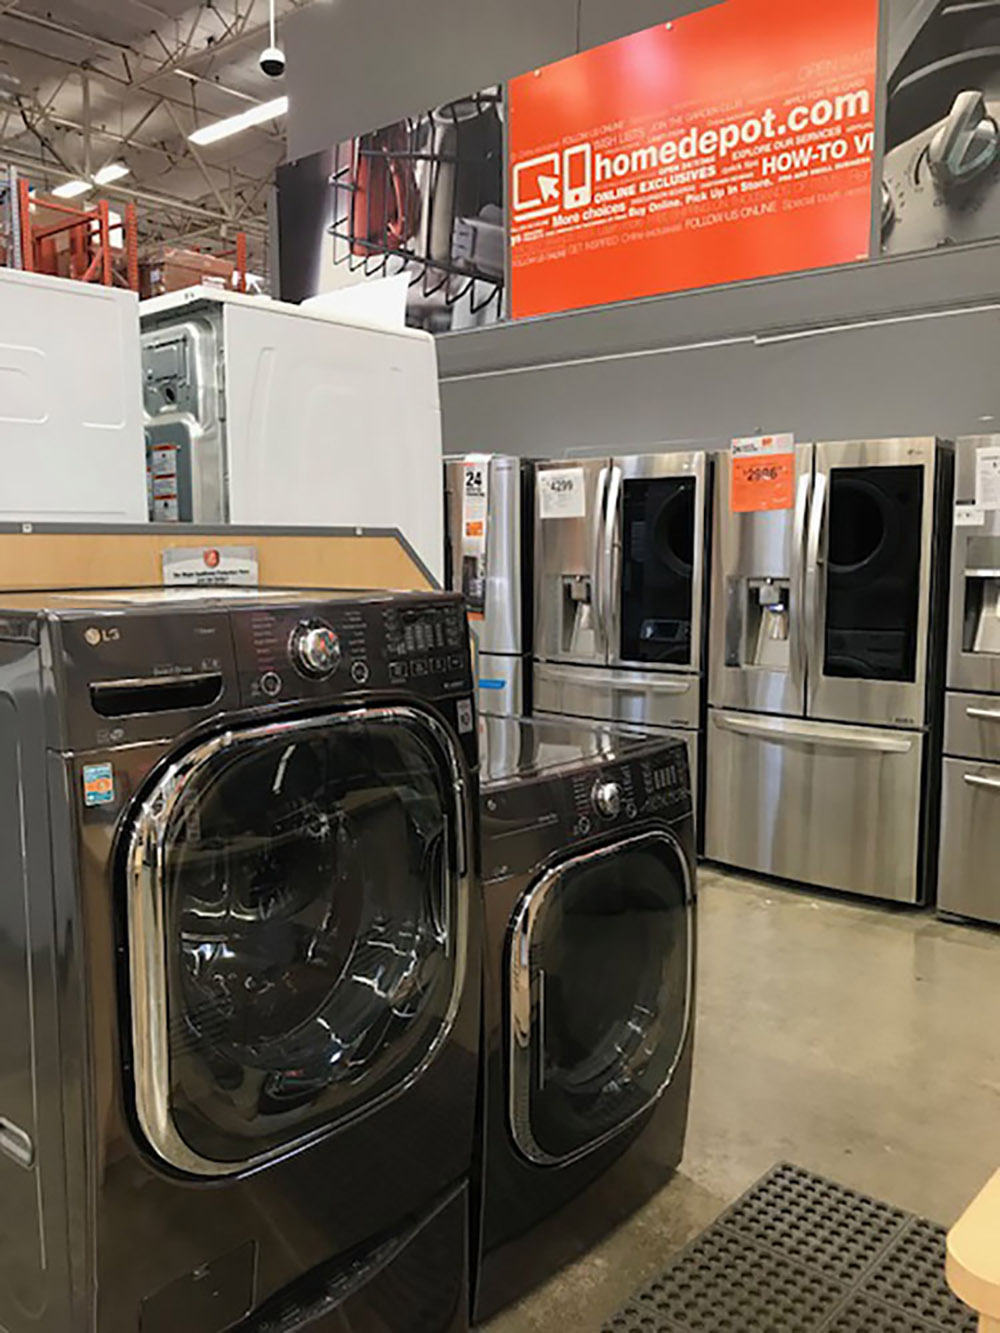 A front load washer and dryer inside The Home Depot store.